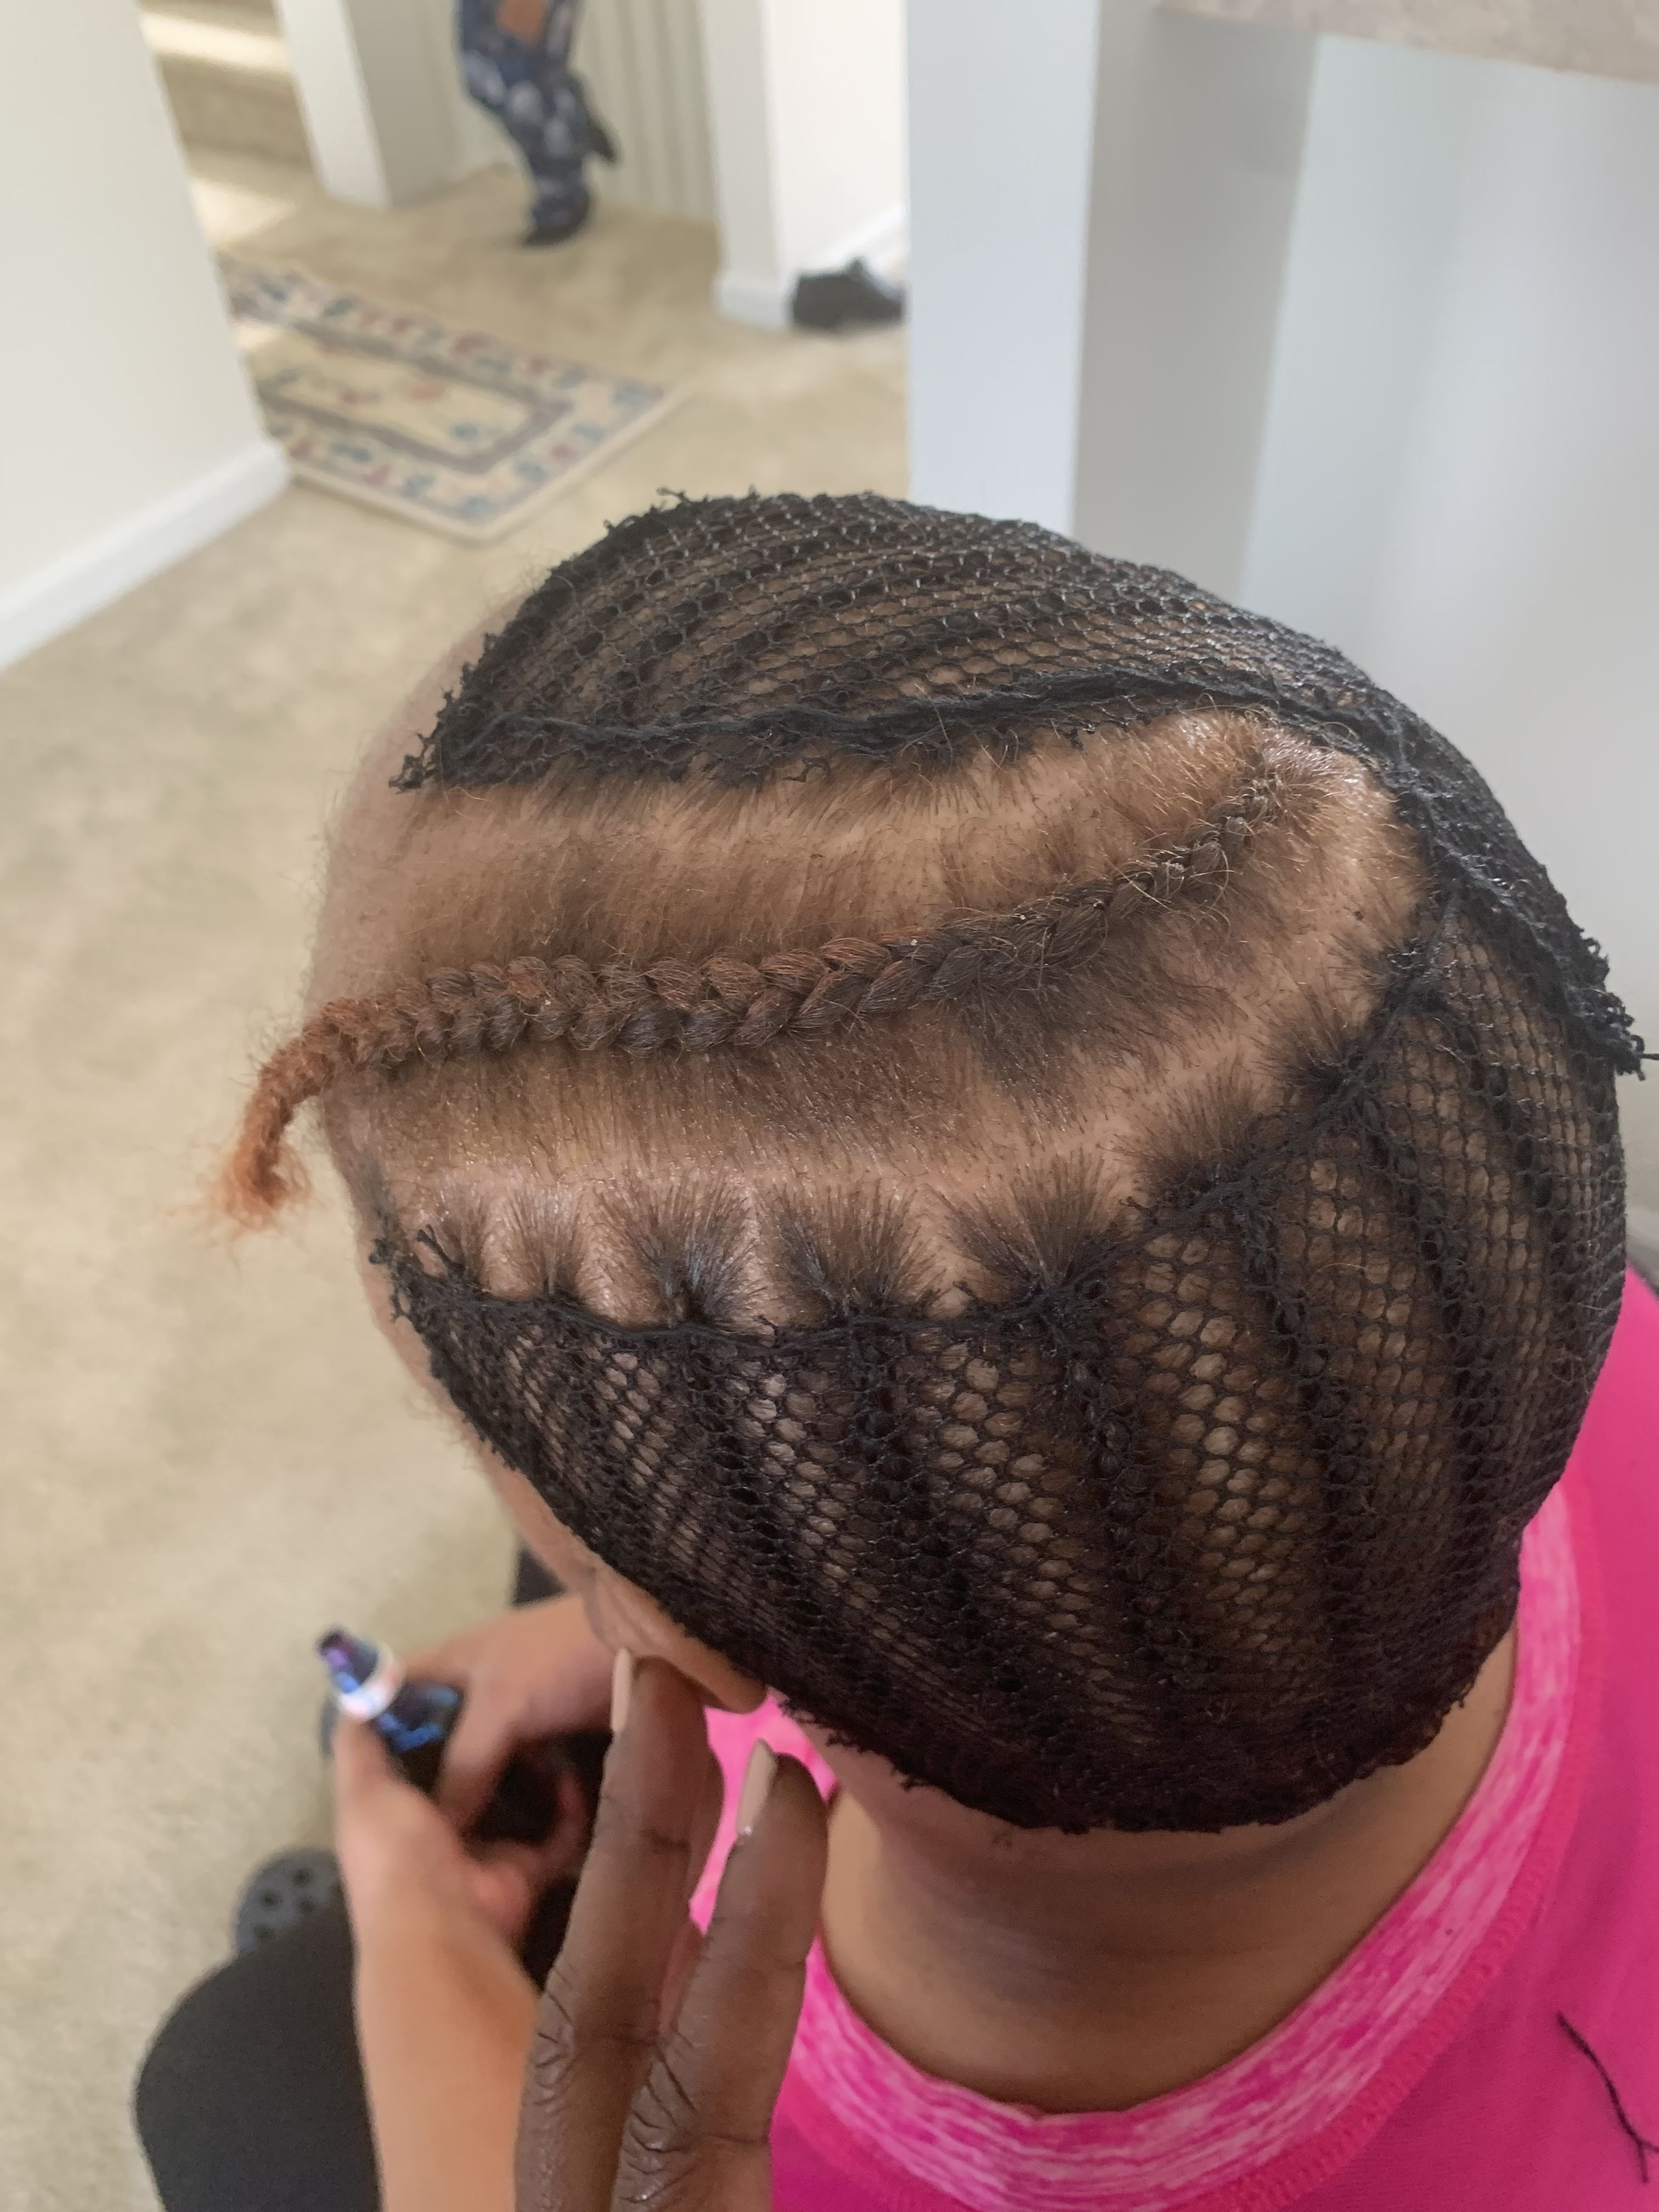 Side Part Braid Pattern : braid, pattern, Braid, Pattern, Sewin, Leave, Patterns,, Crochet, Pattern,, Braids